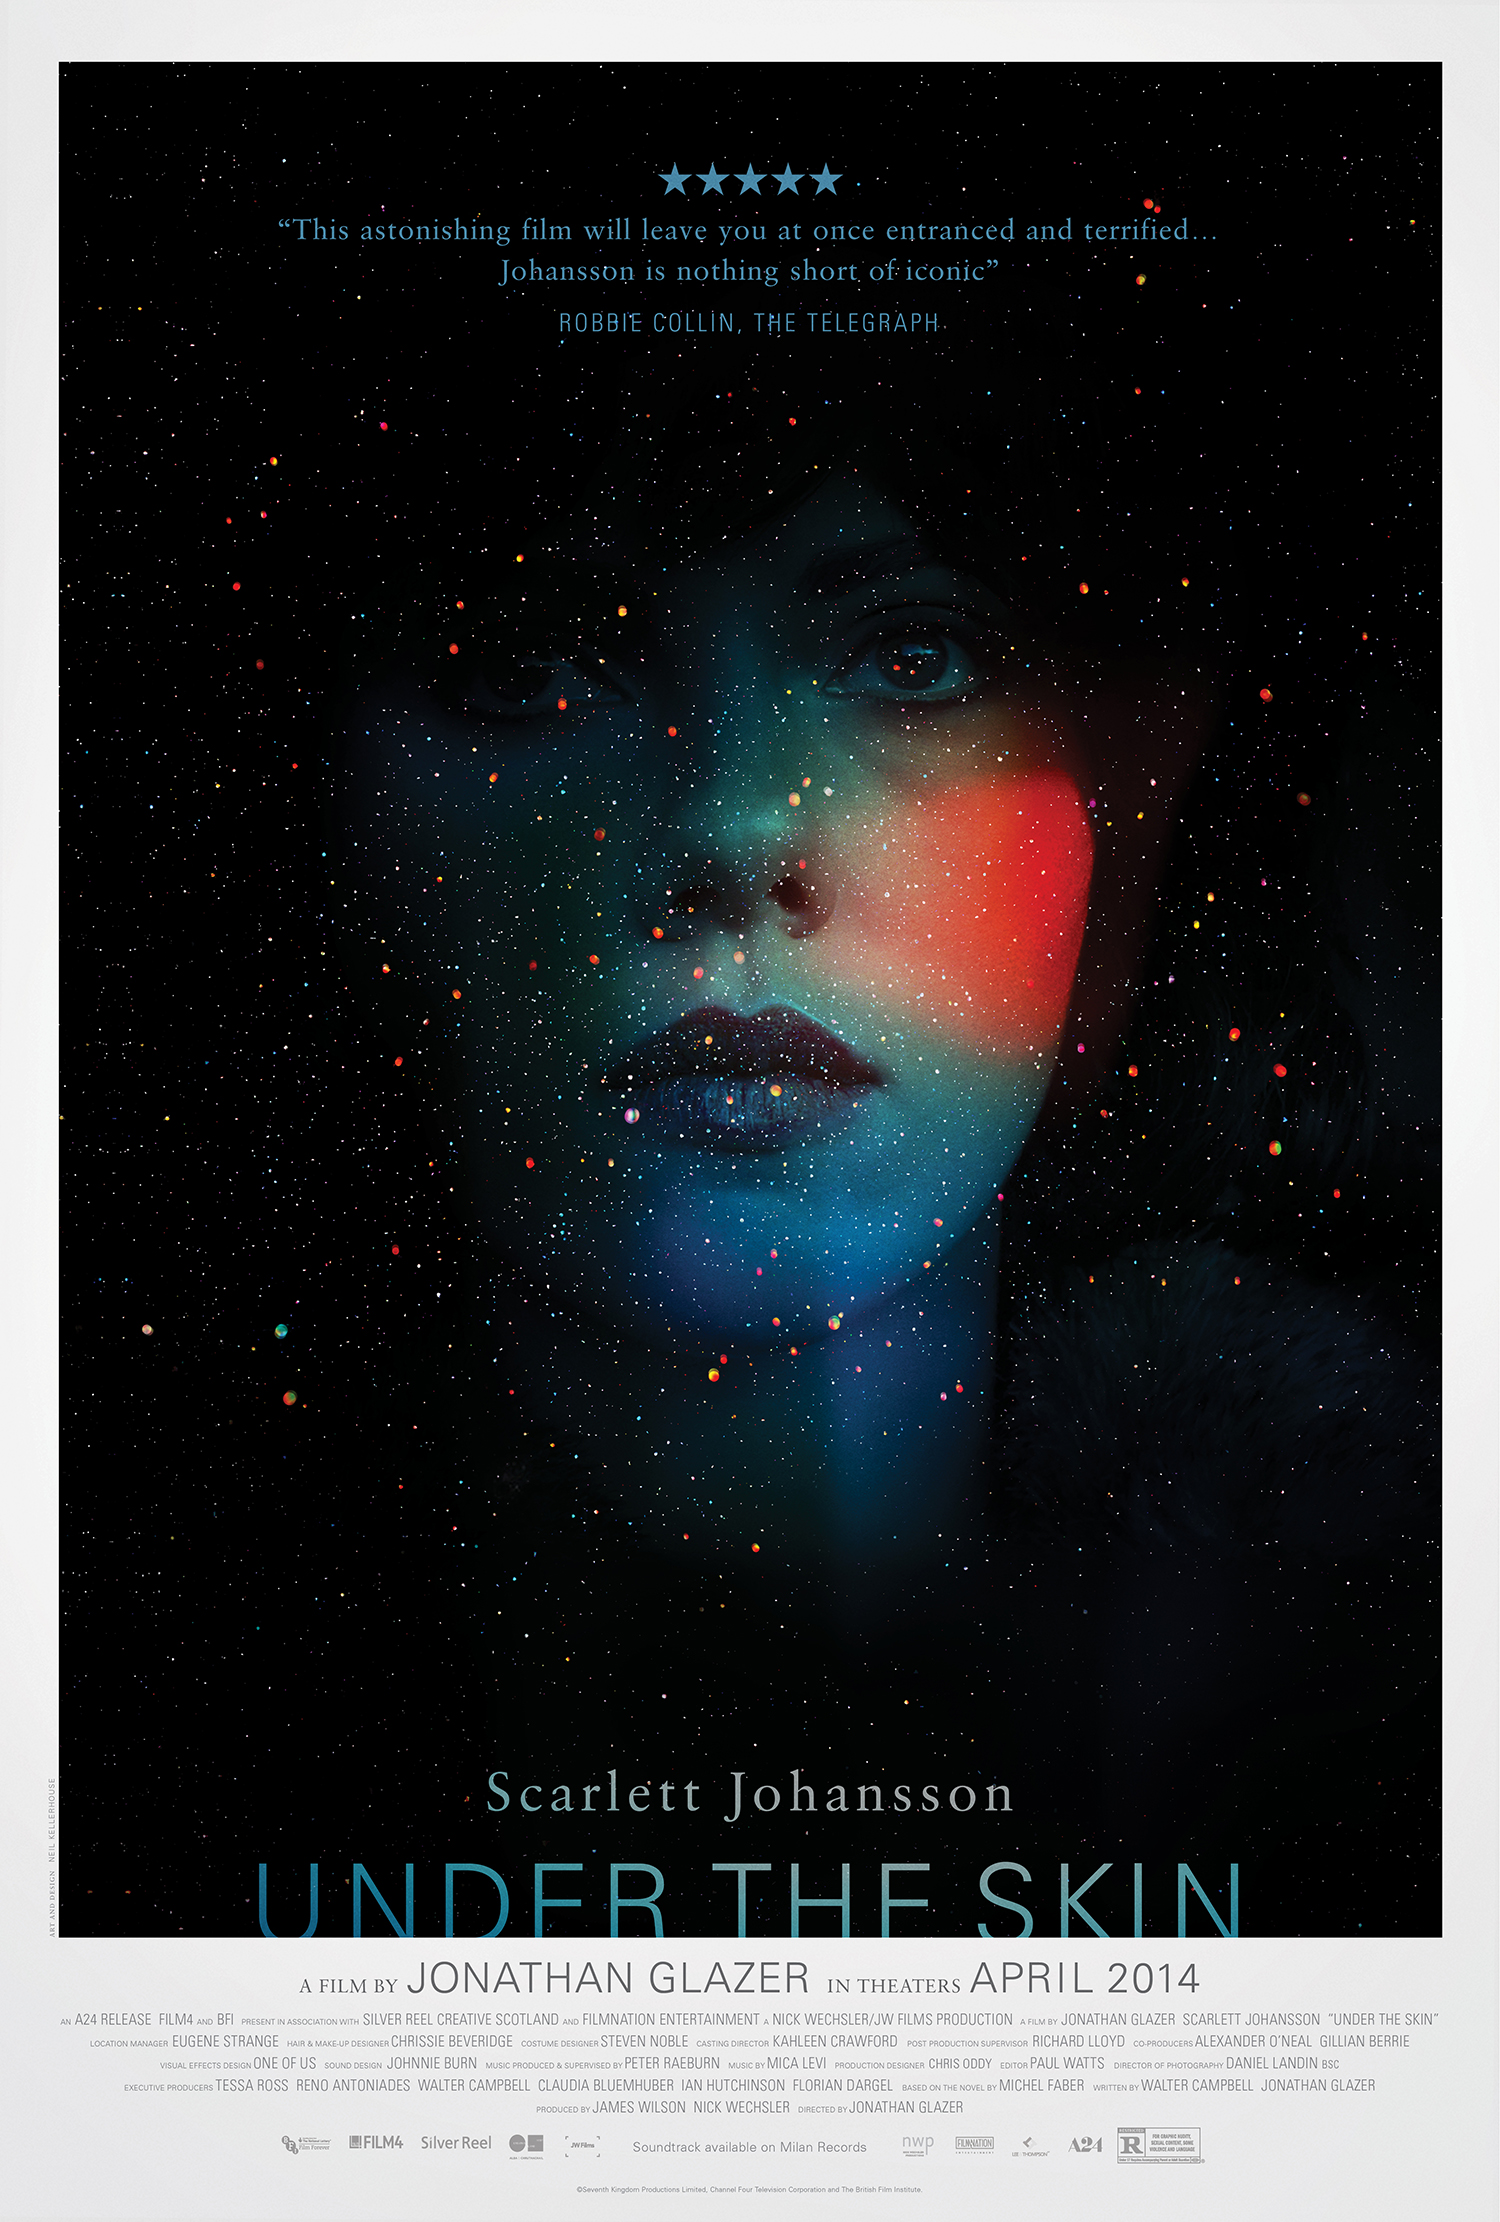 (Scarlett Johansson) Under The Skin movie poster